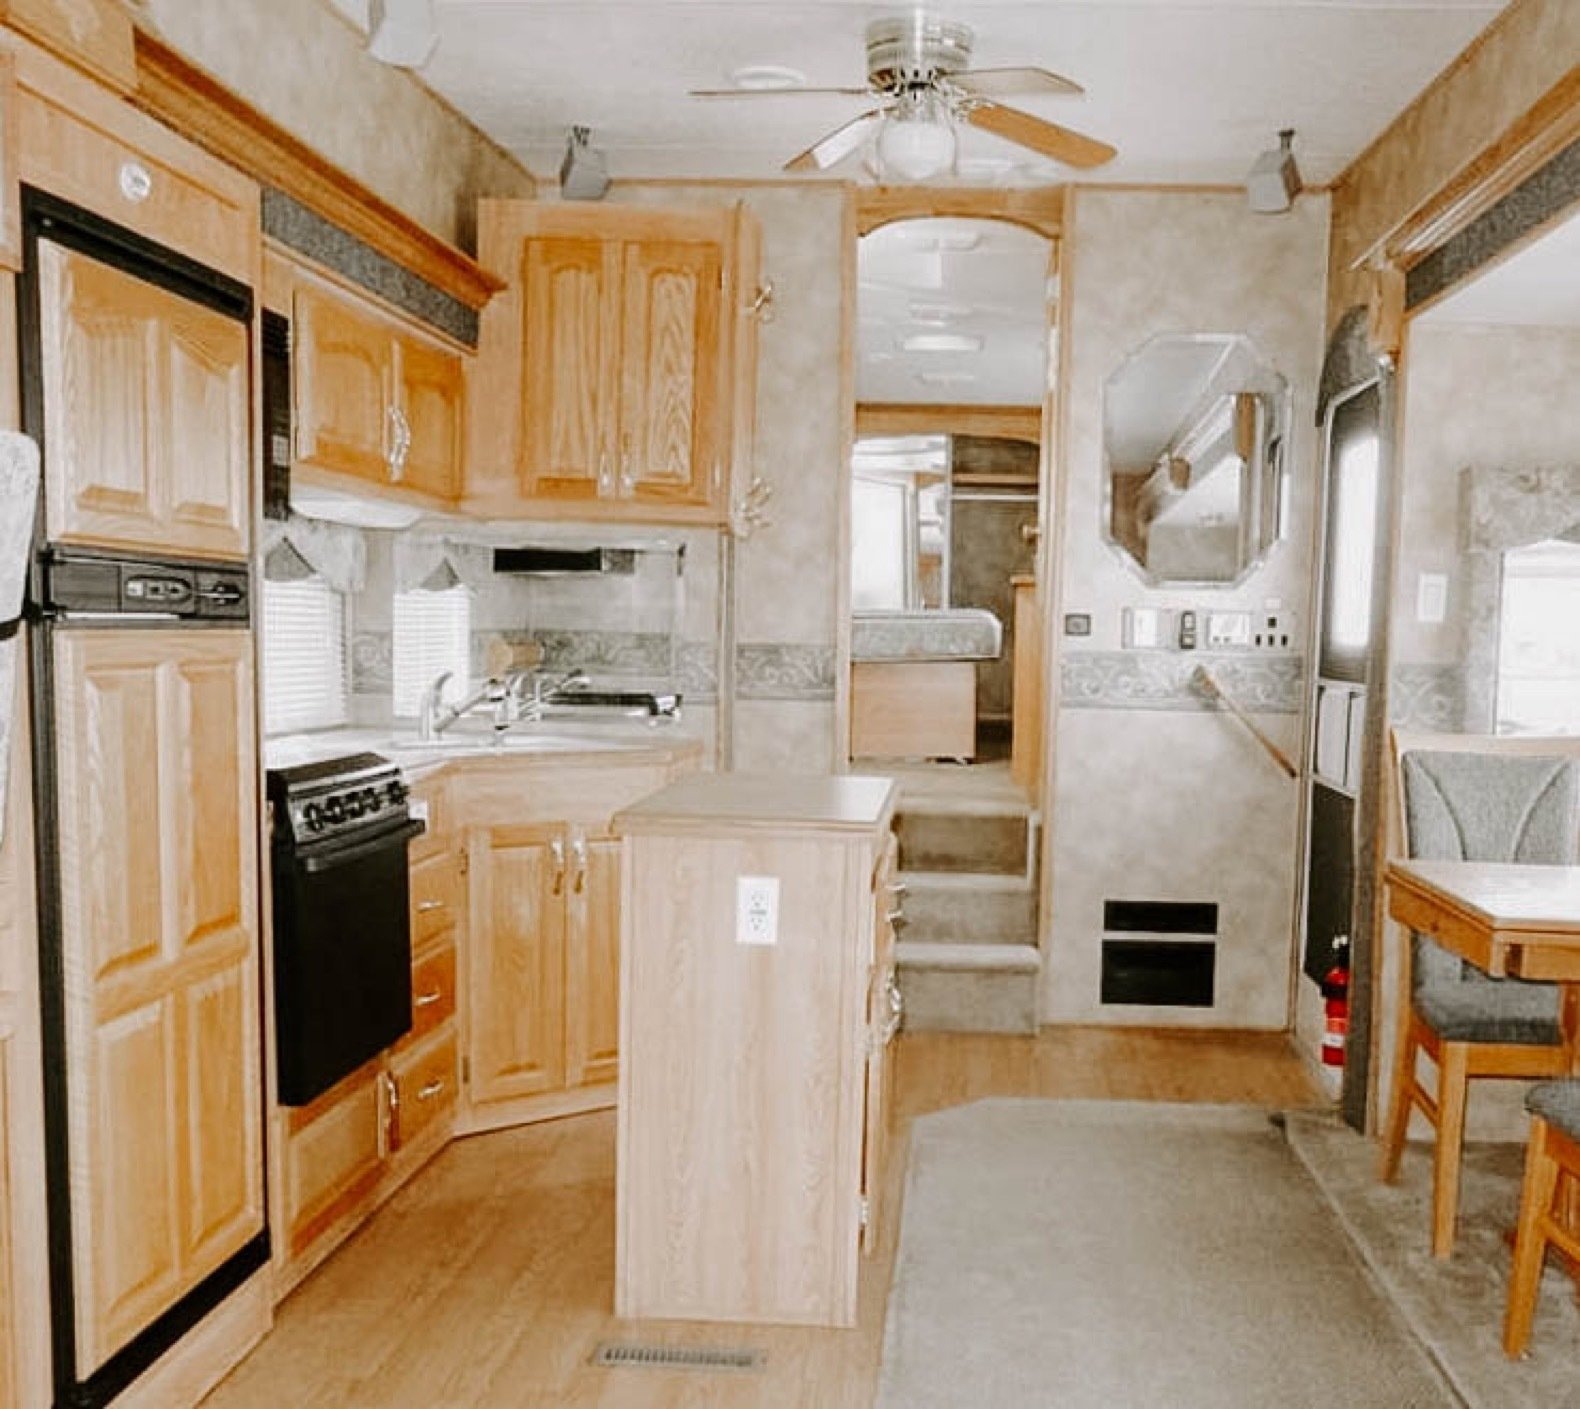 A look at the former kitchen leading to the bedroom in the rear.  Photo 5 of 25 in Before & After: An Uninspired RV Gets a Cheery Refresh For $5K